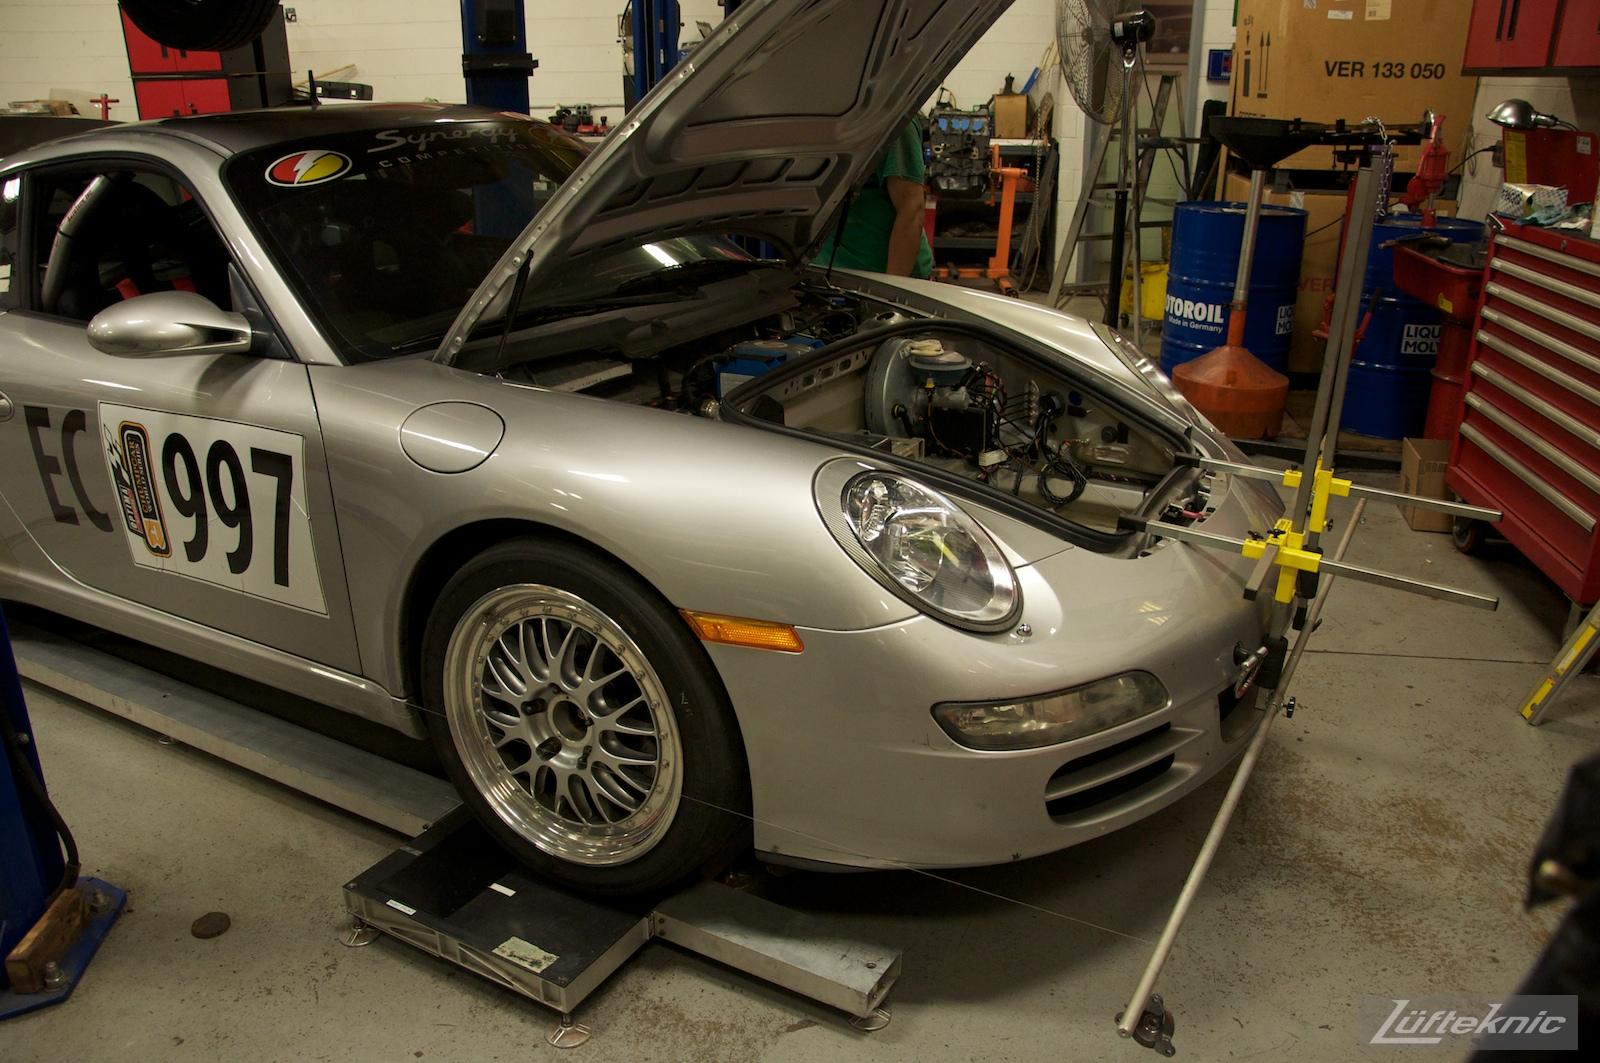 Synergy Racing modified Porsche 911 track car being updated at Lufteknic.